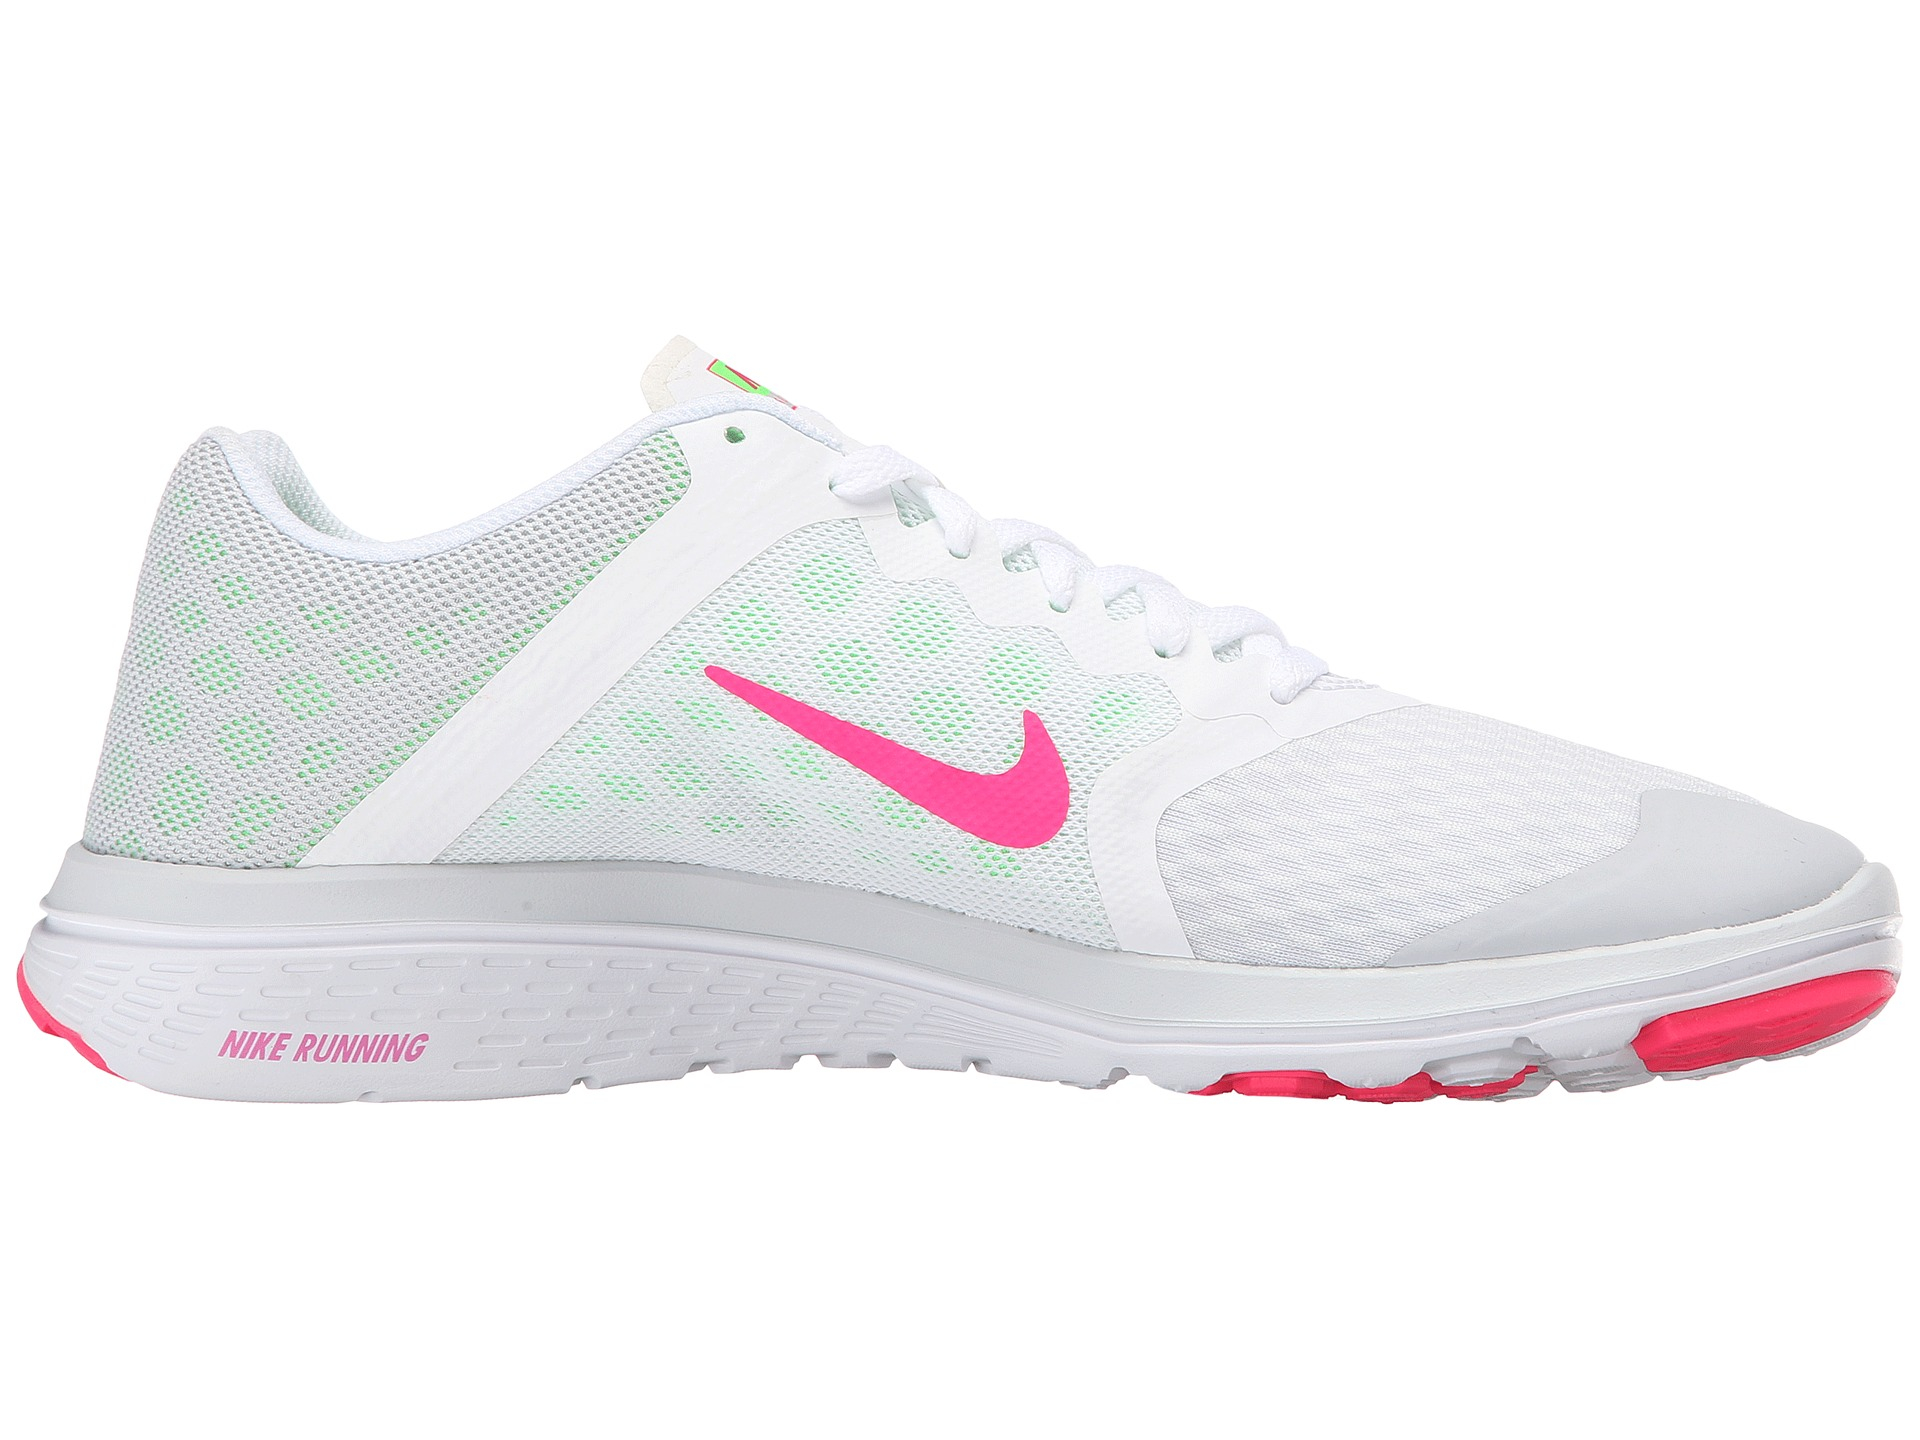 Cheap Nike Free 7.0 Womens Cheap Nike Free Run UK, Discount Cheap Nike Free Shoes